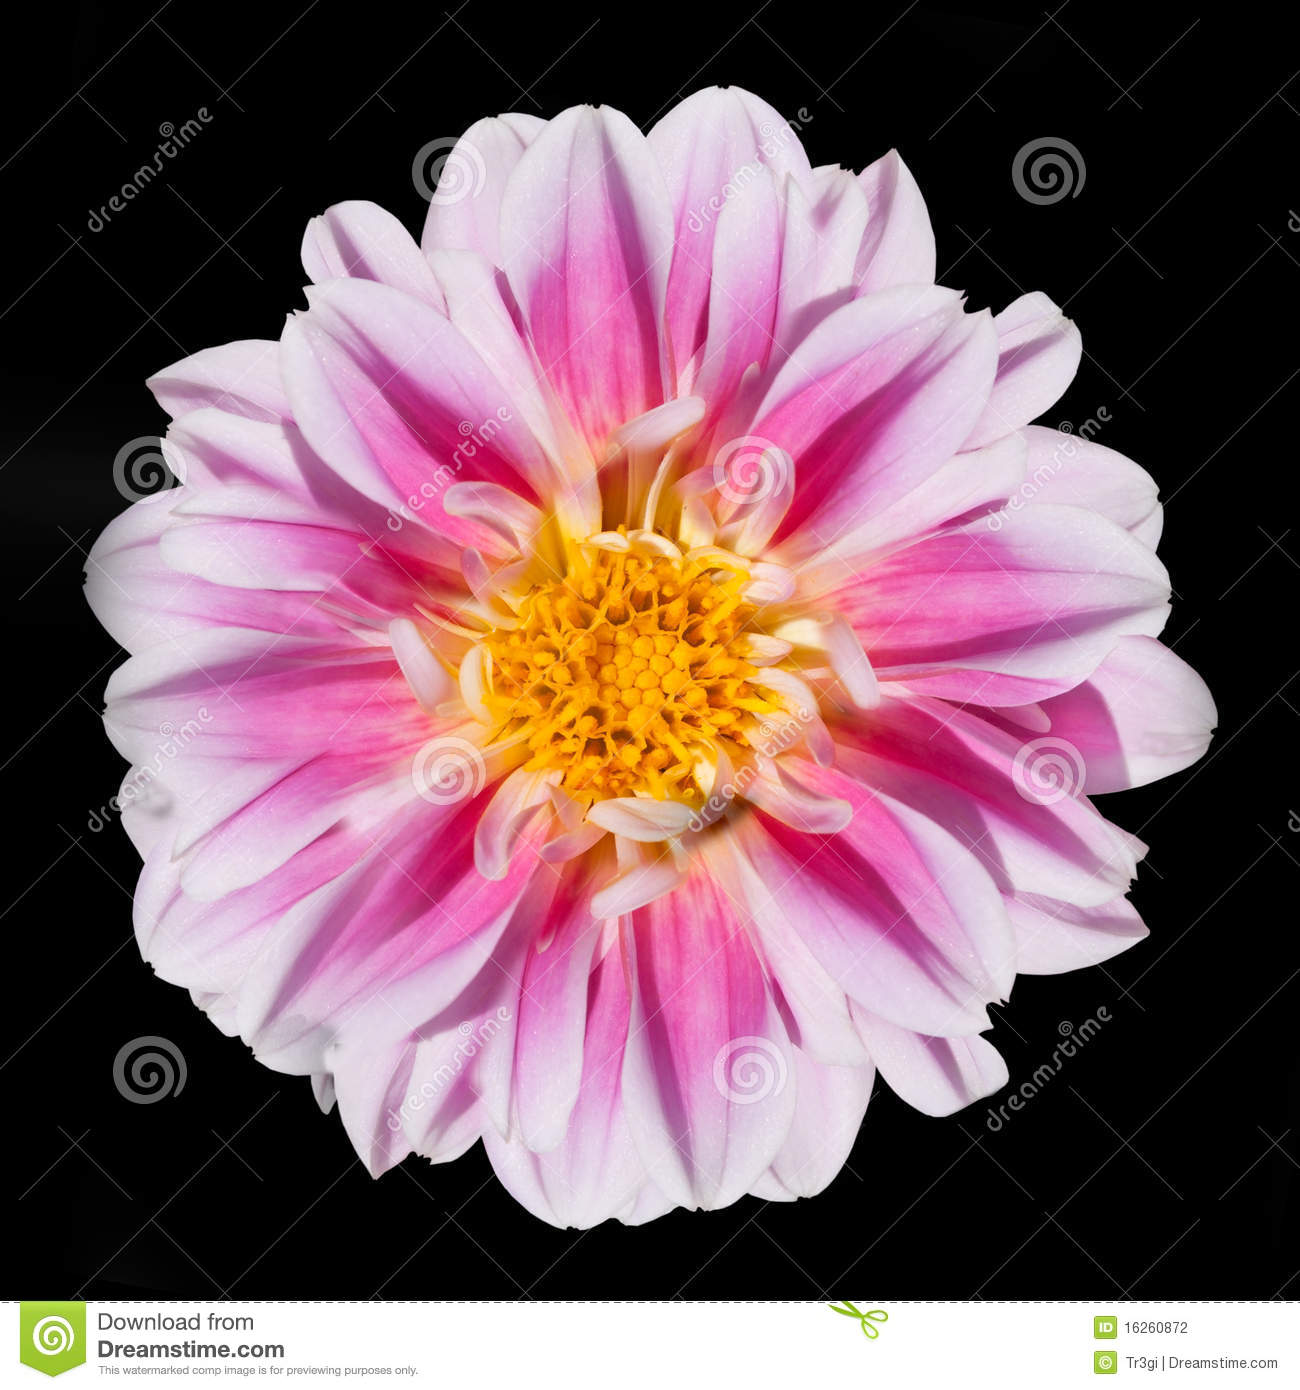 Pink And White Dahlia Flower Isolated Black Stock graphy Image 162